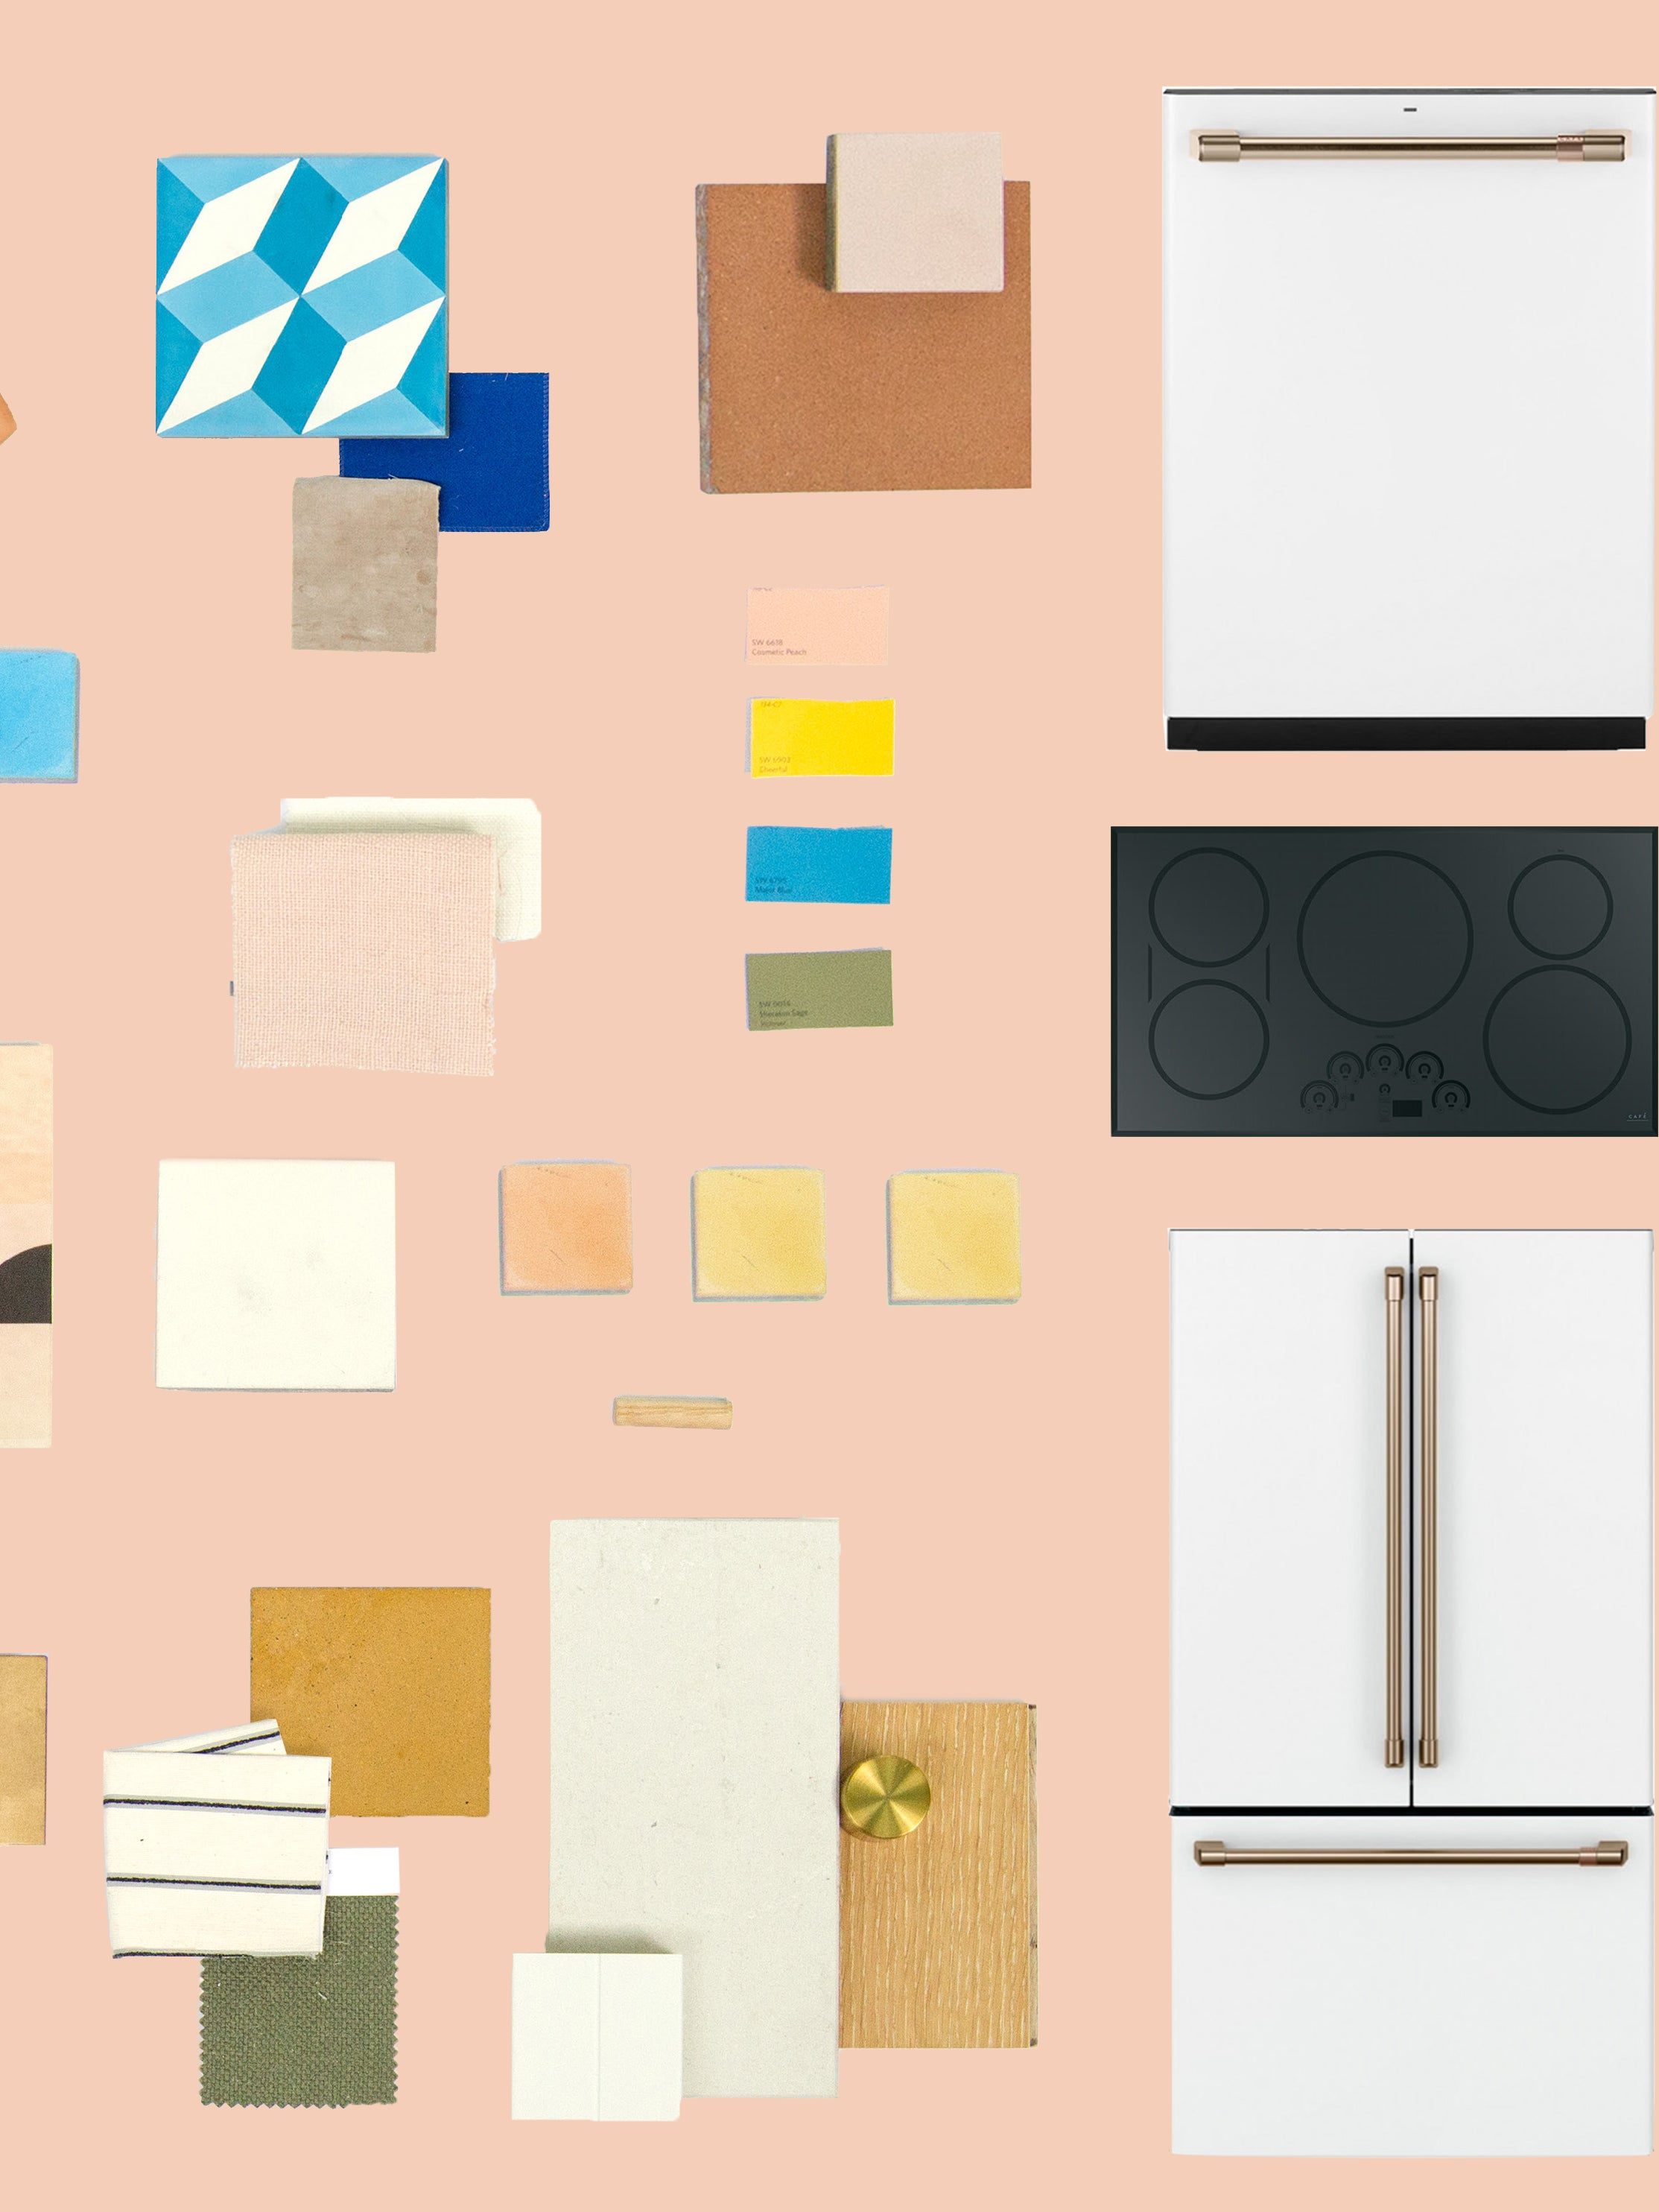 How to Create a Custom Kitchen, According to an Interior Designer